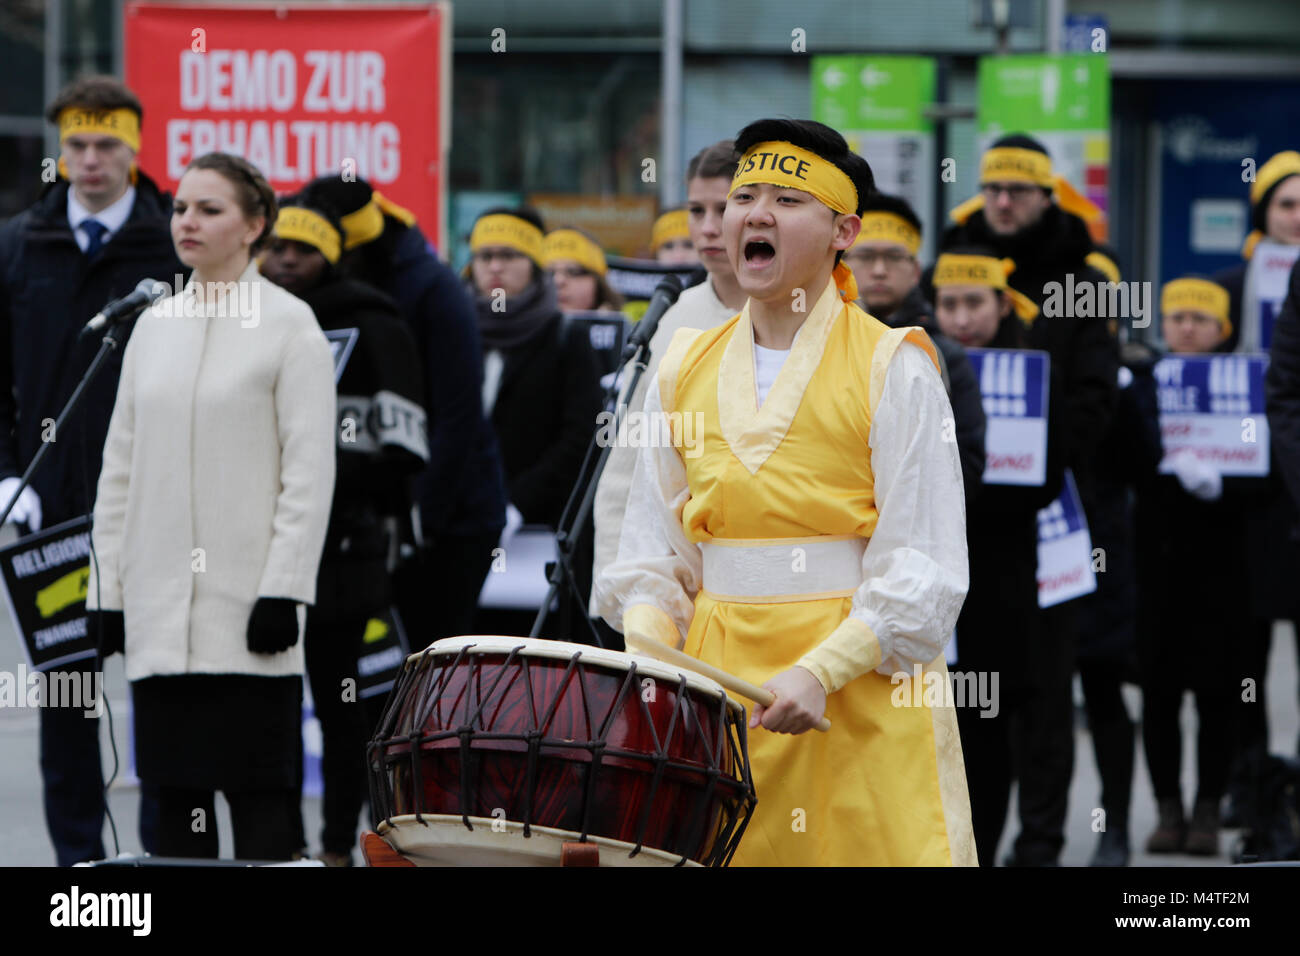 Frankfurt, Germany. 17th Feb, 2018. A Korean drummer in a traditional dress performs on a buk, a traditional Korean Stock Photo